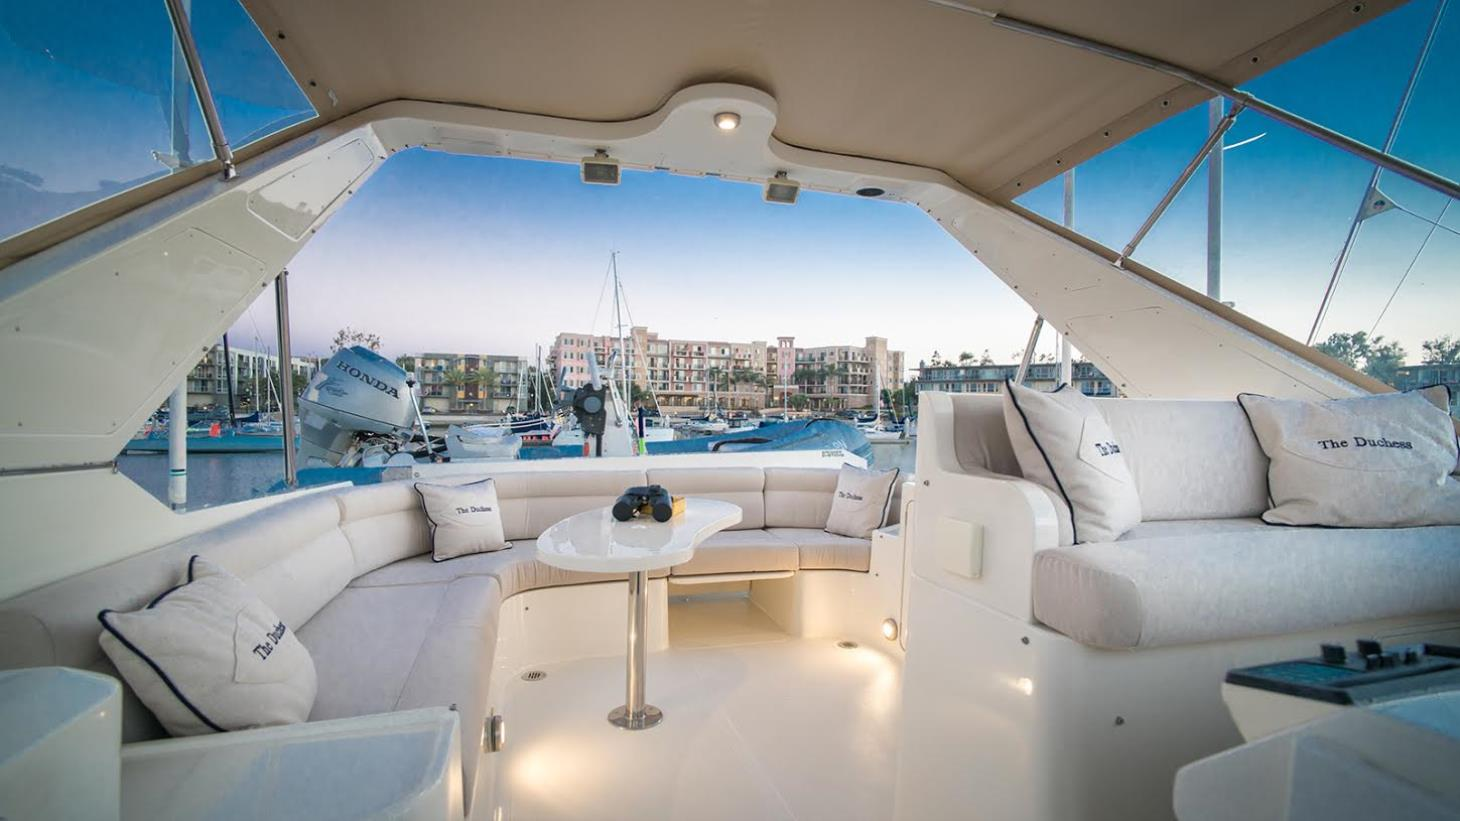 The Duchess Yacht Charter Service image 4